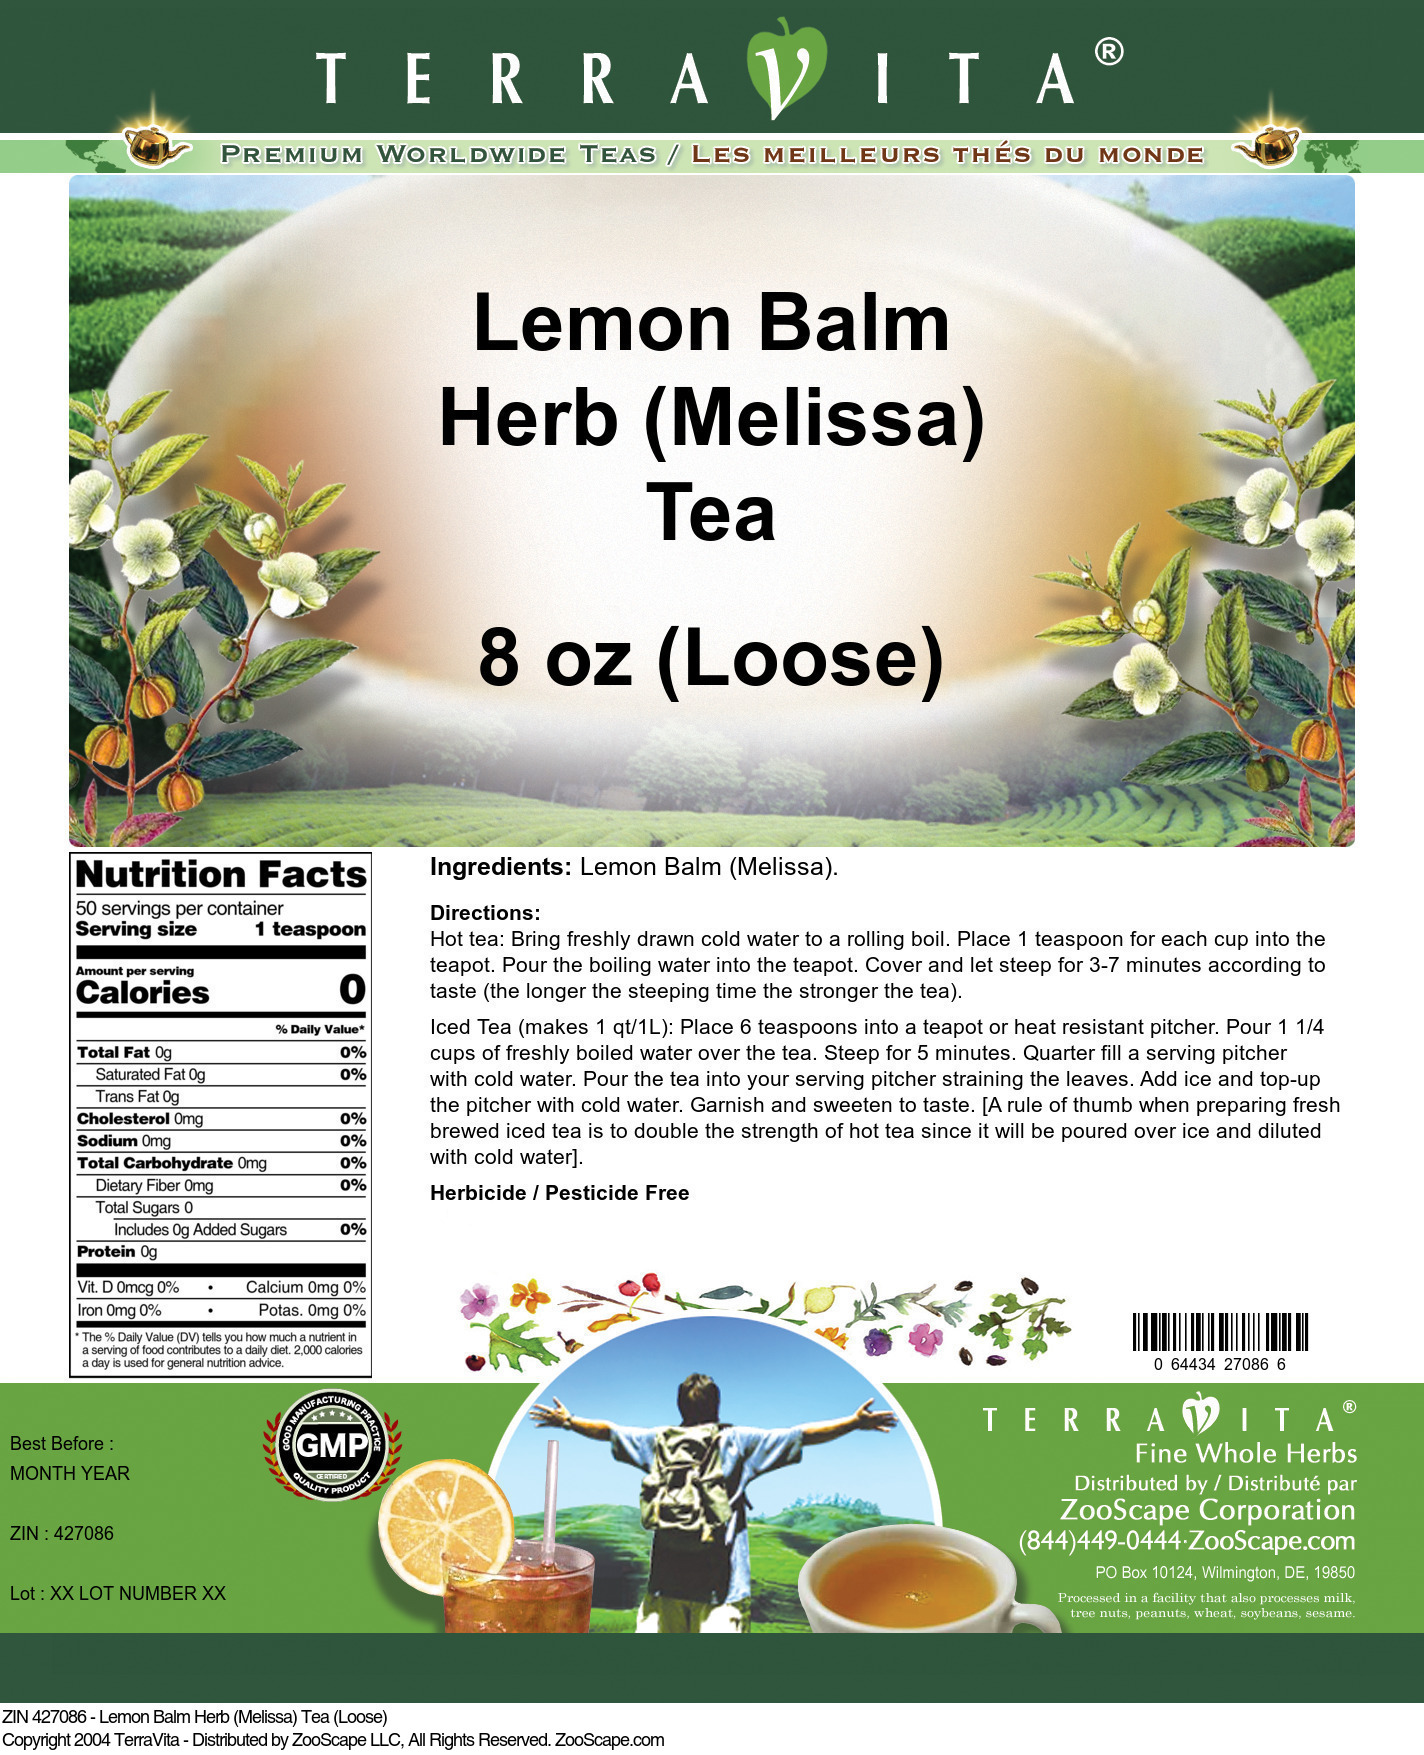 Lemon Balm Herb (Melissa) Tea (Loose) - Label